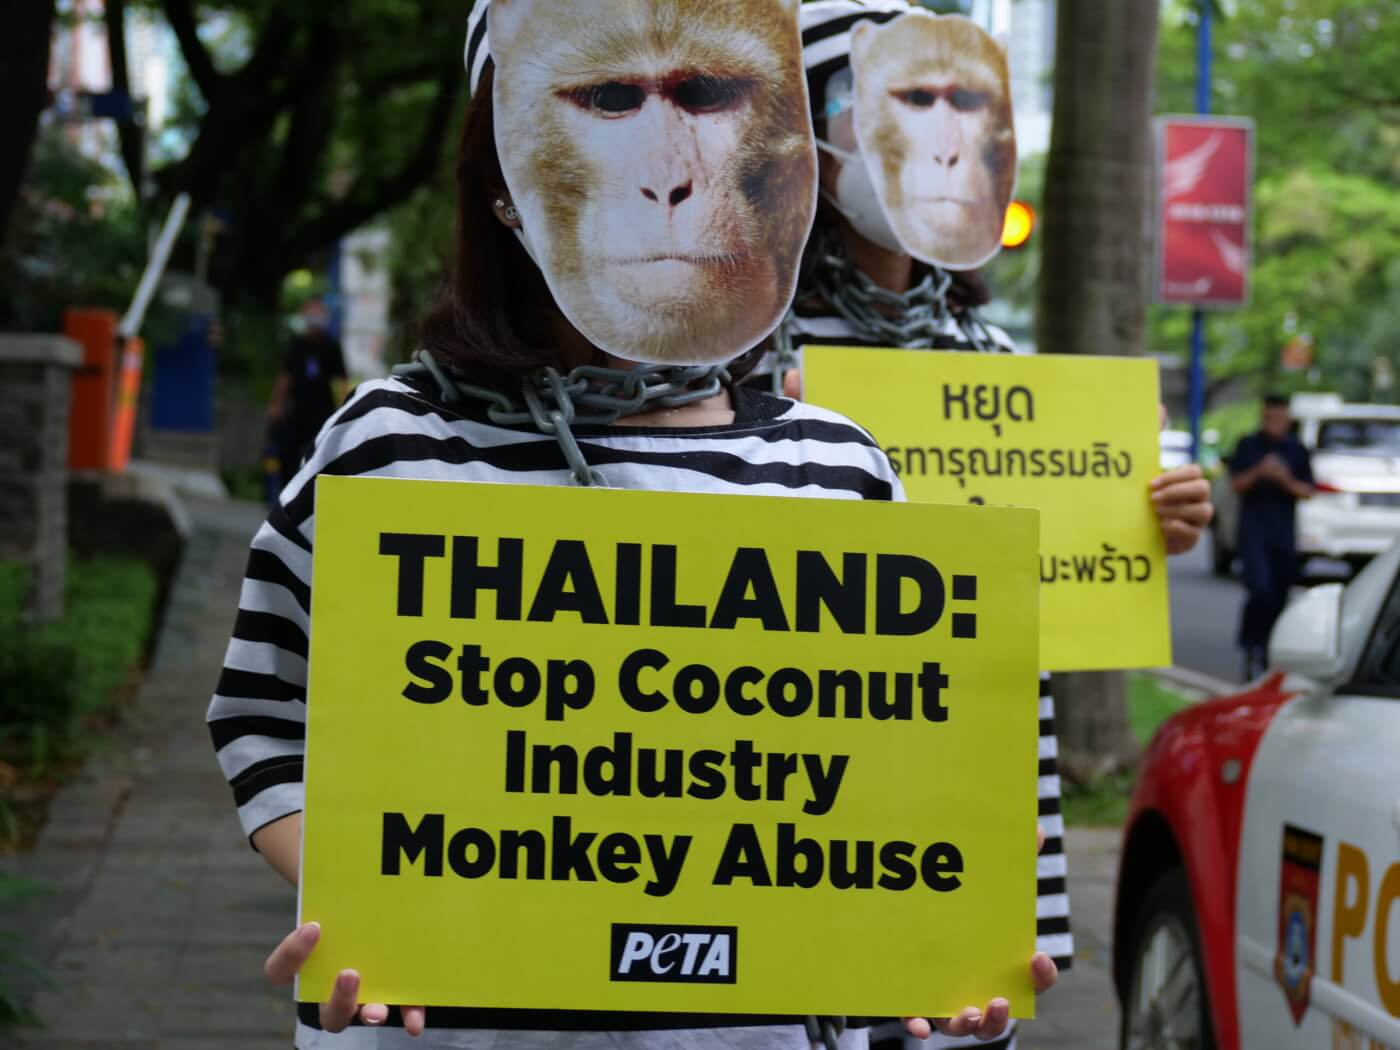 Chained 'Monkeys' Protest Coconut Industry at Thai Embassy in Jakarta, Indonesia